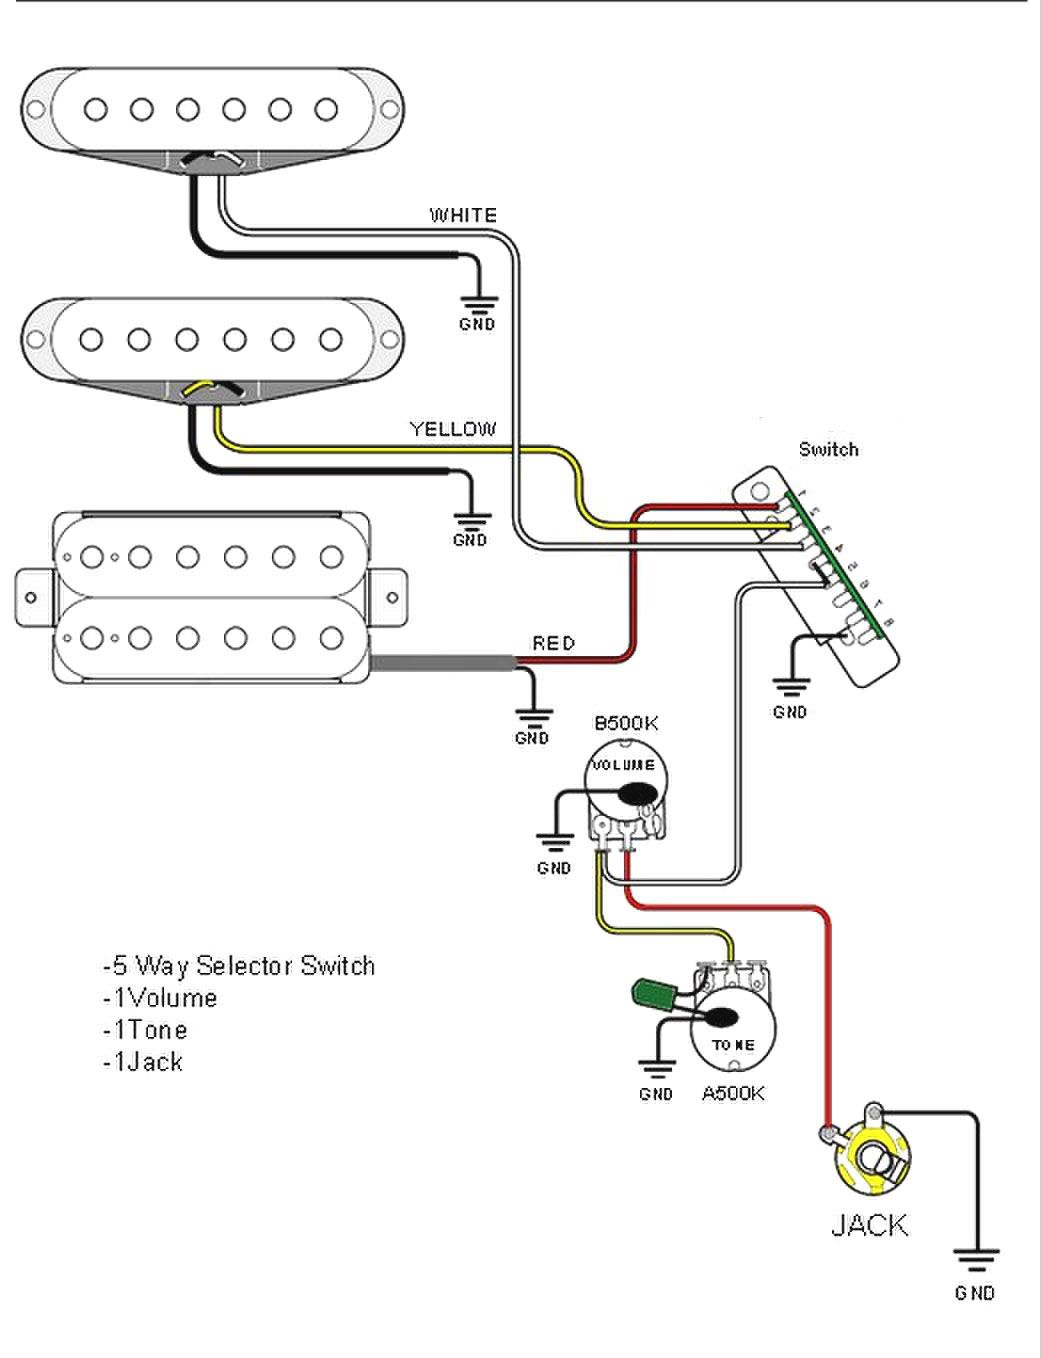 suhr hss wiring diagram suhr image wiring diagram hss wiring diagram hss wiring diagrams on suhr hss wiring diagram